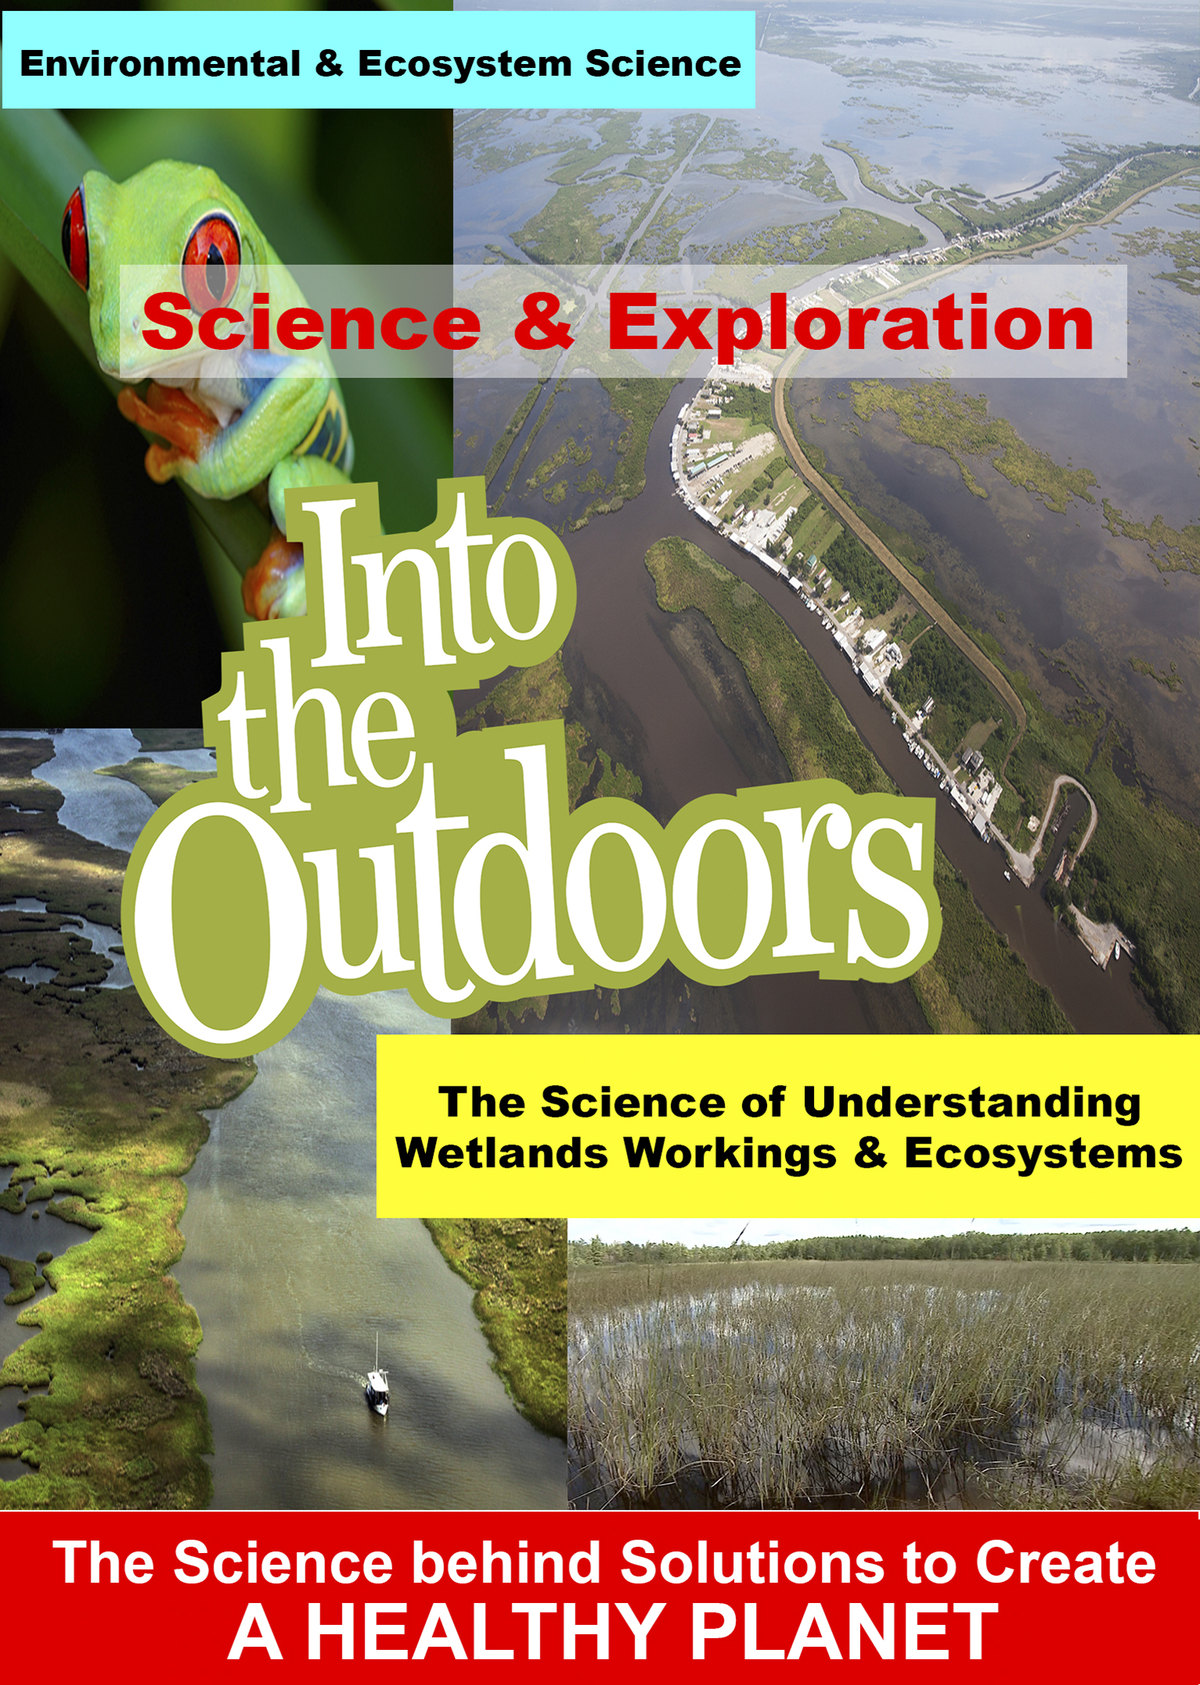 K4989 - The Science of Understanding Wetlands Workings & Ecosystems